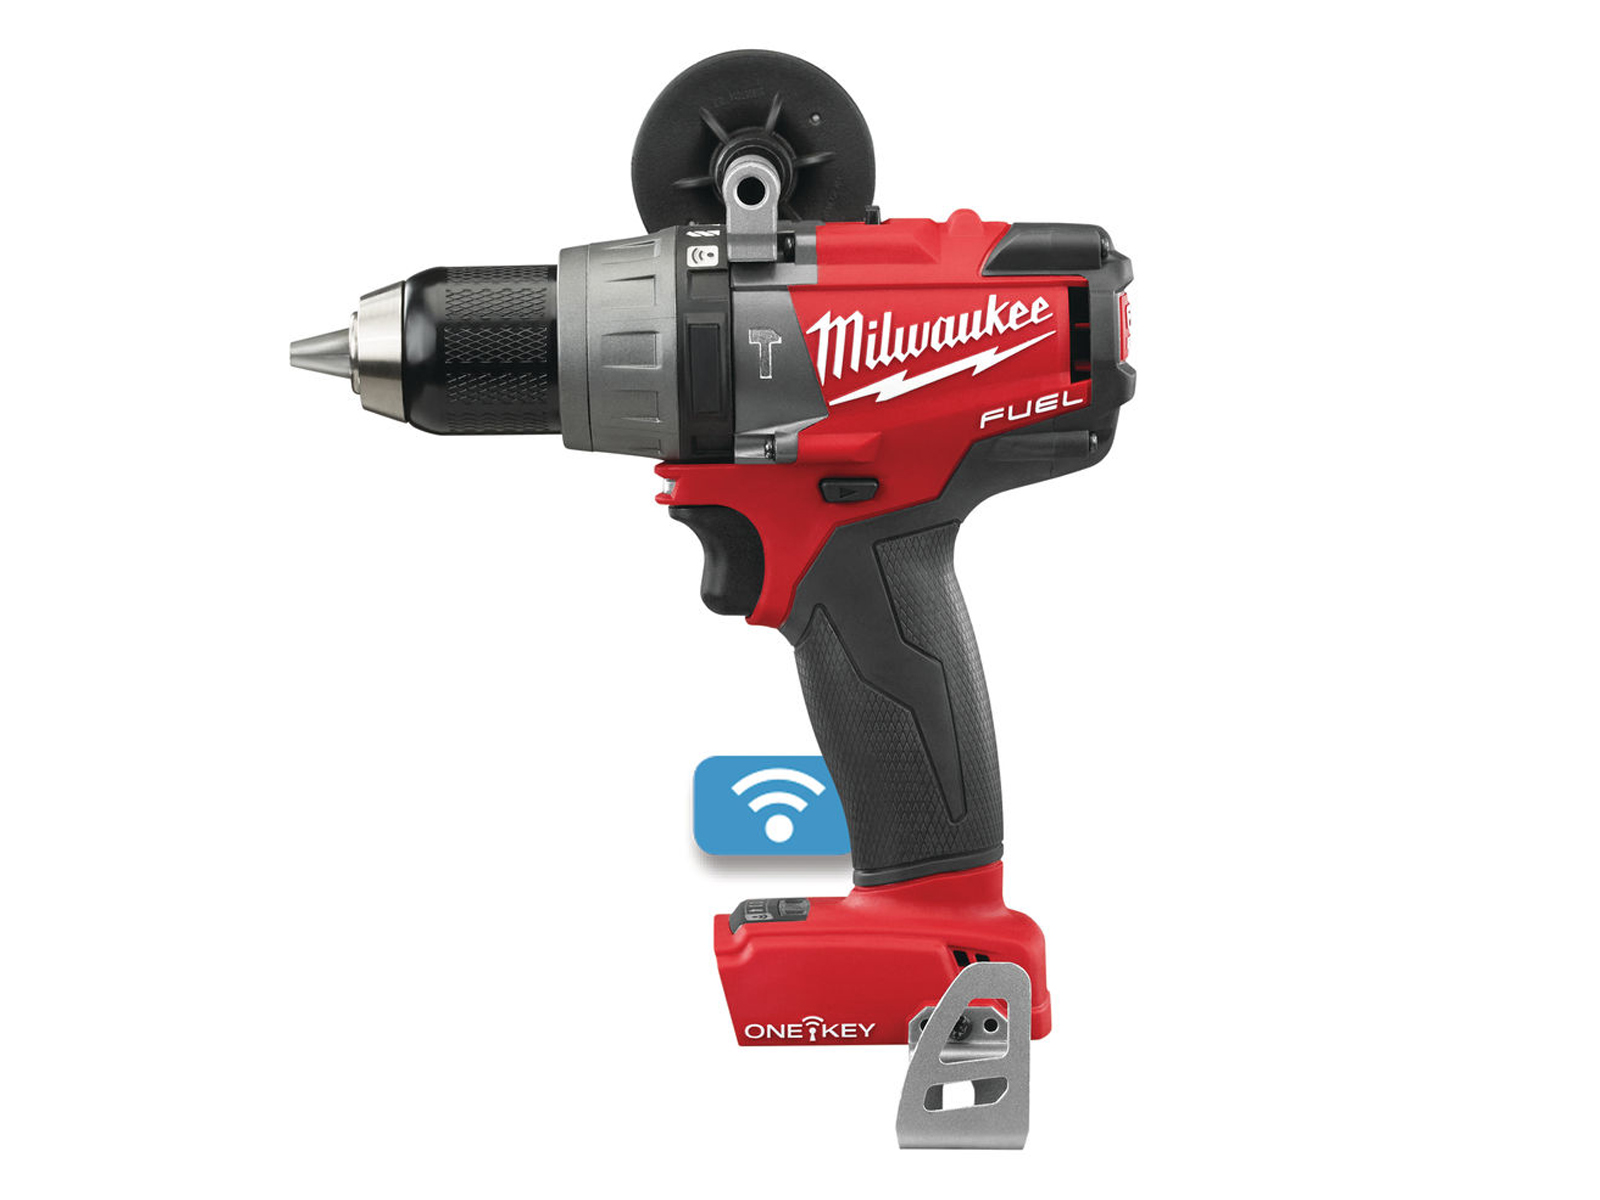 MILWAUKEE 18V ONE-KEY FUEL BRUSHLESS COMBI DRILL - M18ONEPD - BODY ONLY